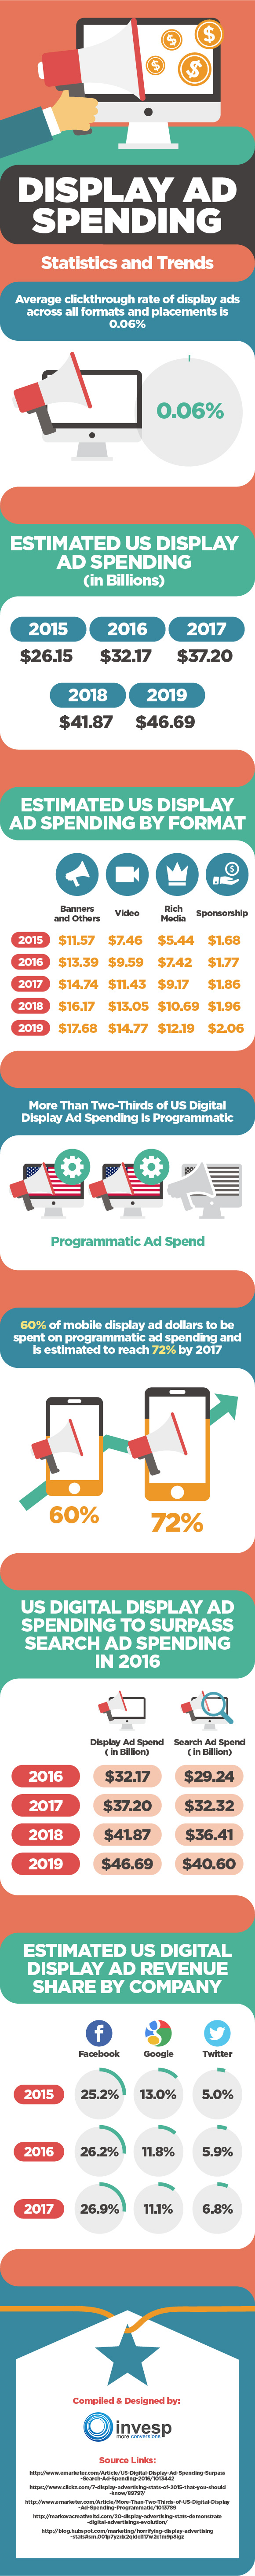 US Digital display ad spending